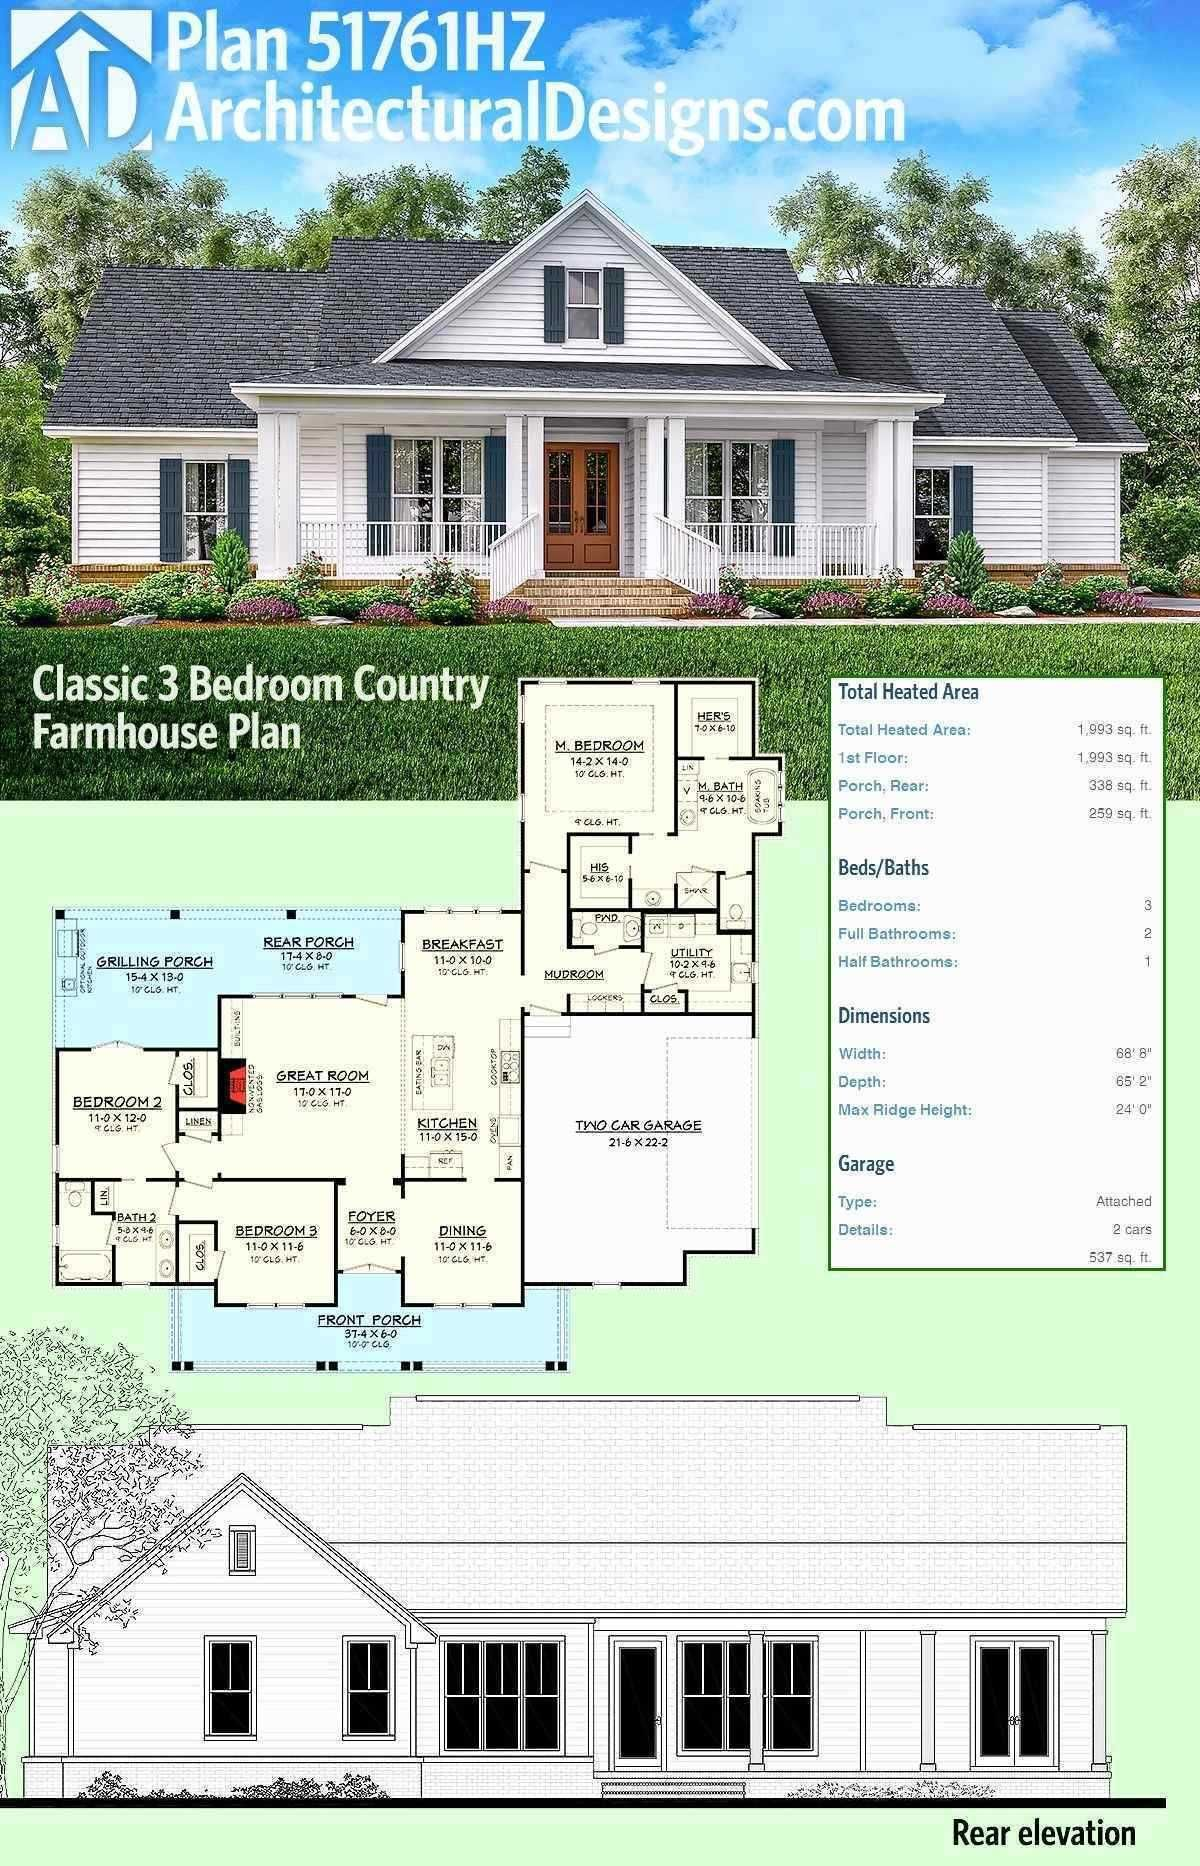 Pin By Kelly Walsh On Huse Architectural Design House Plans Farmhouse Plans House Plans Farmhouse